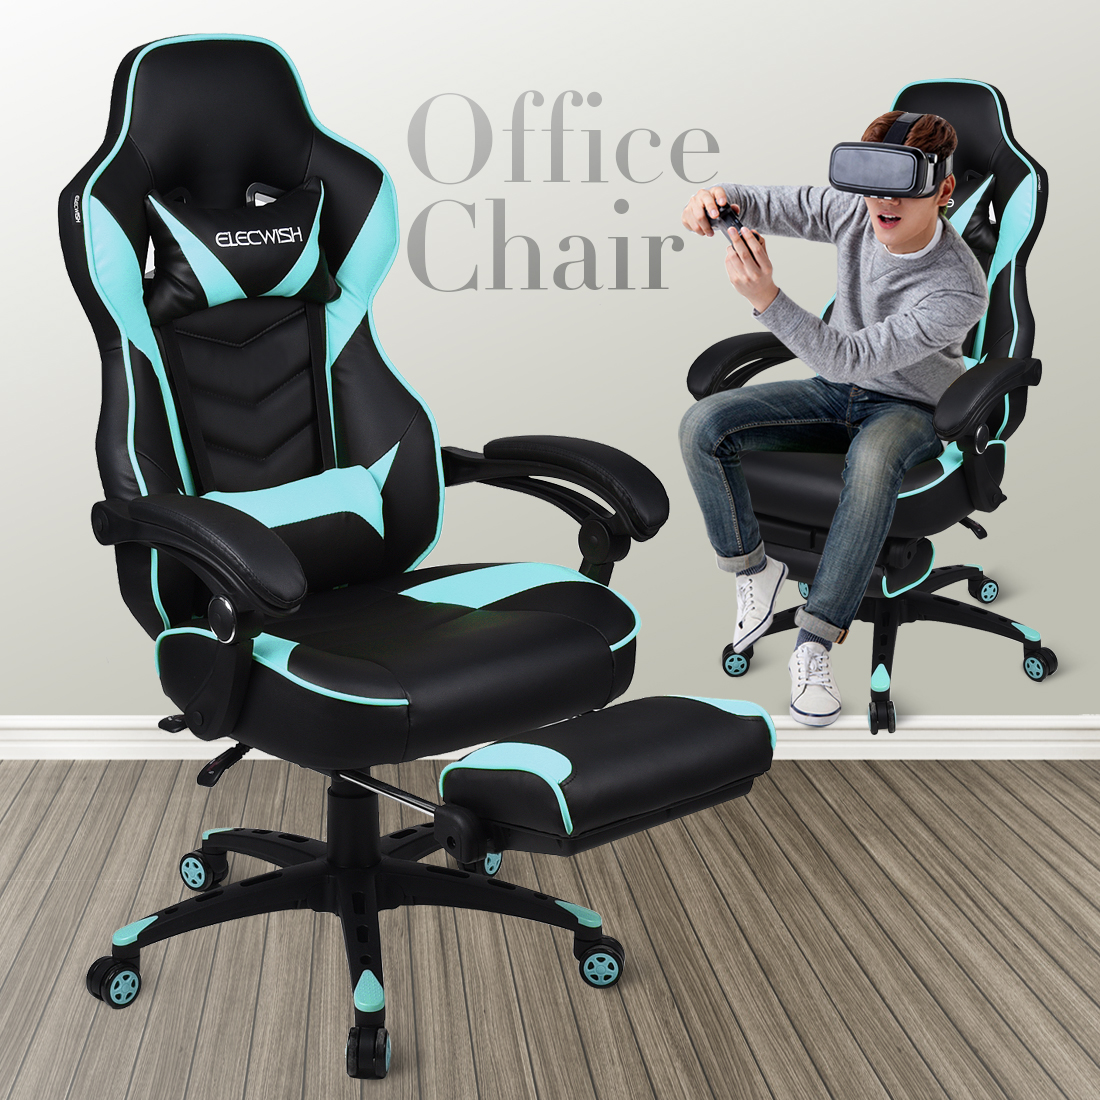 Exceptionnel Details About Racing Car Gaming Chair Adjustable Recliner Swivel PU Leather  Office Desk Seat